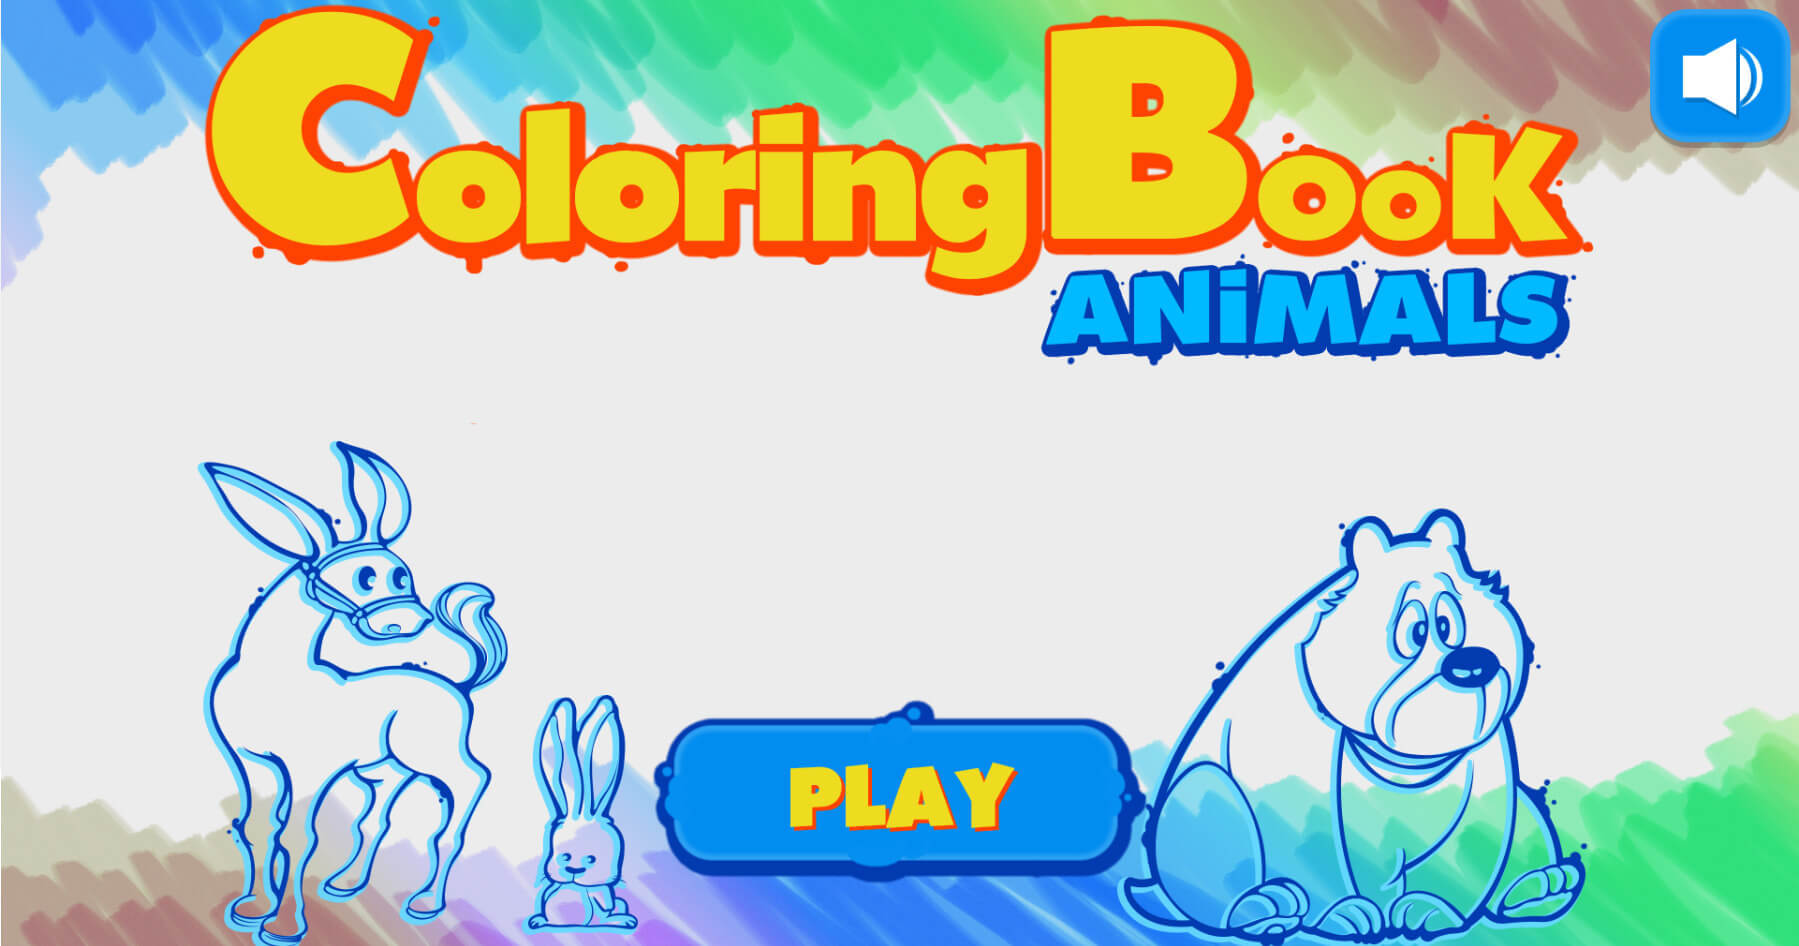 html5 coloring book animals html5 game - Coloring Book Animals